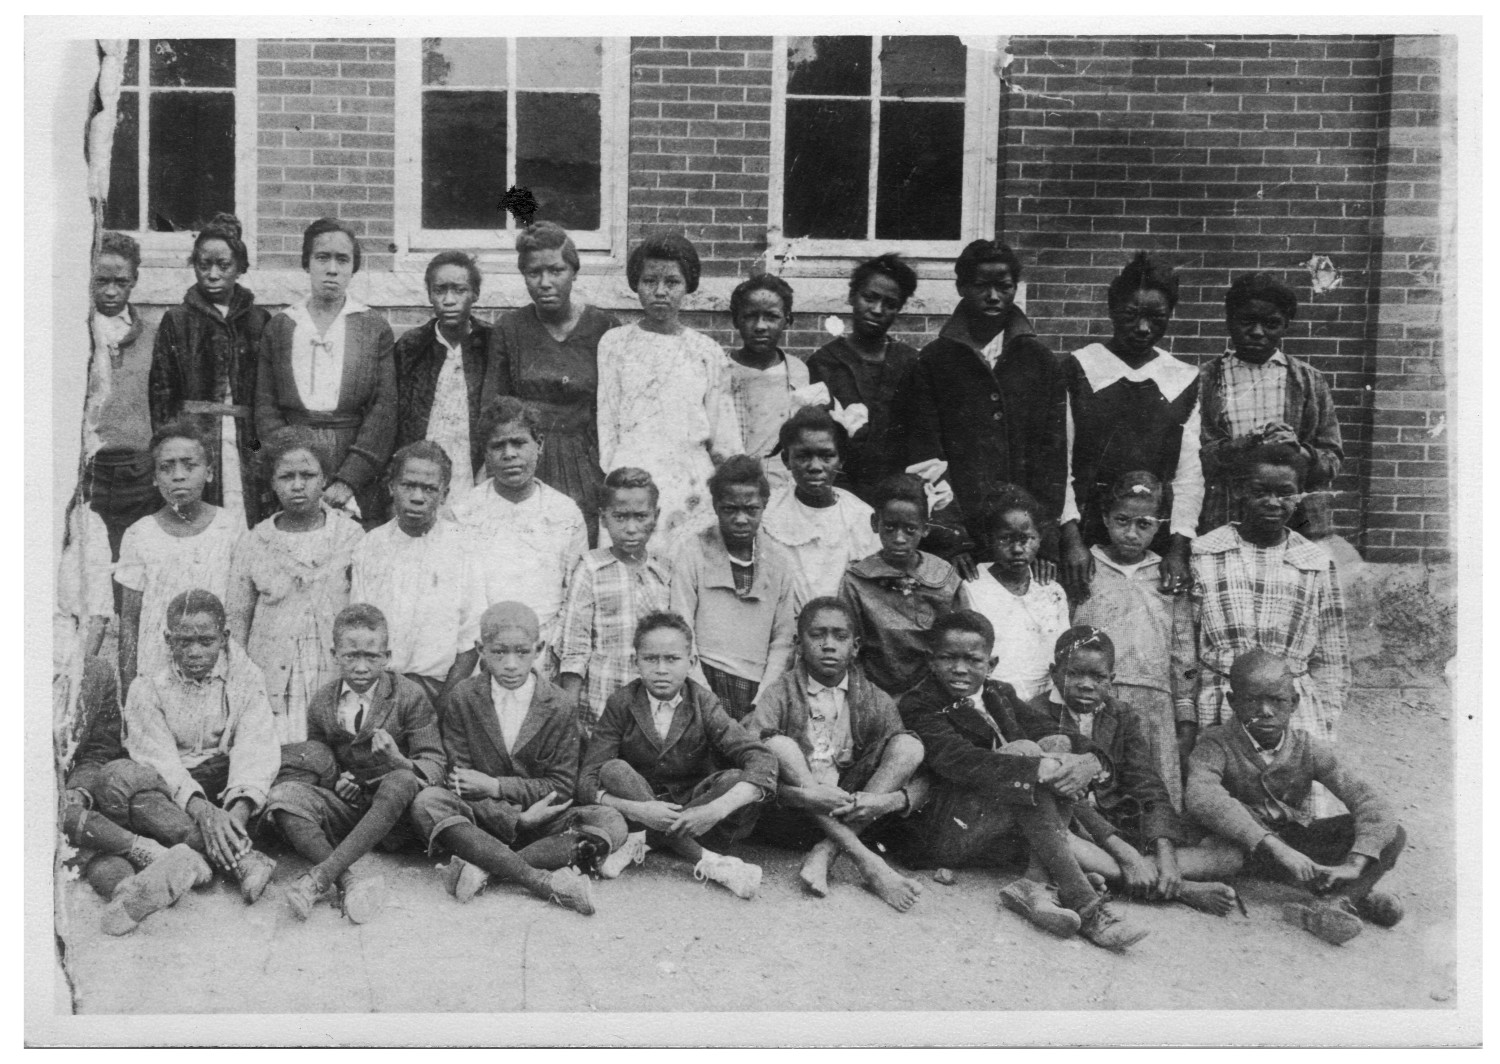 Photograph of students at  Blackshear School of Austin, TX in the 1920s.